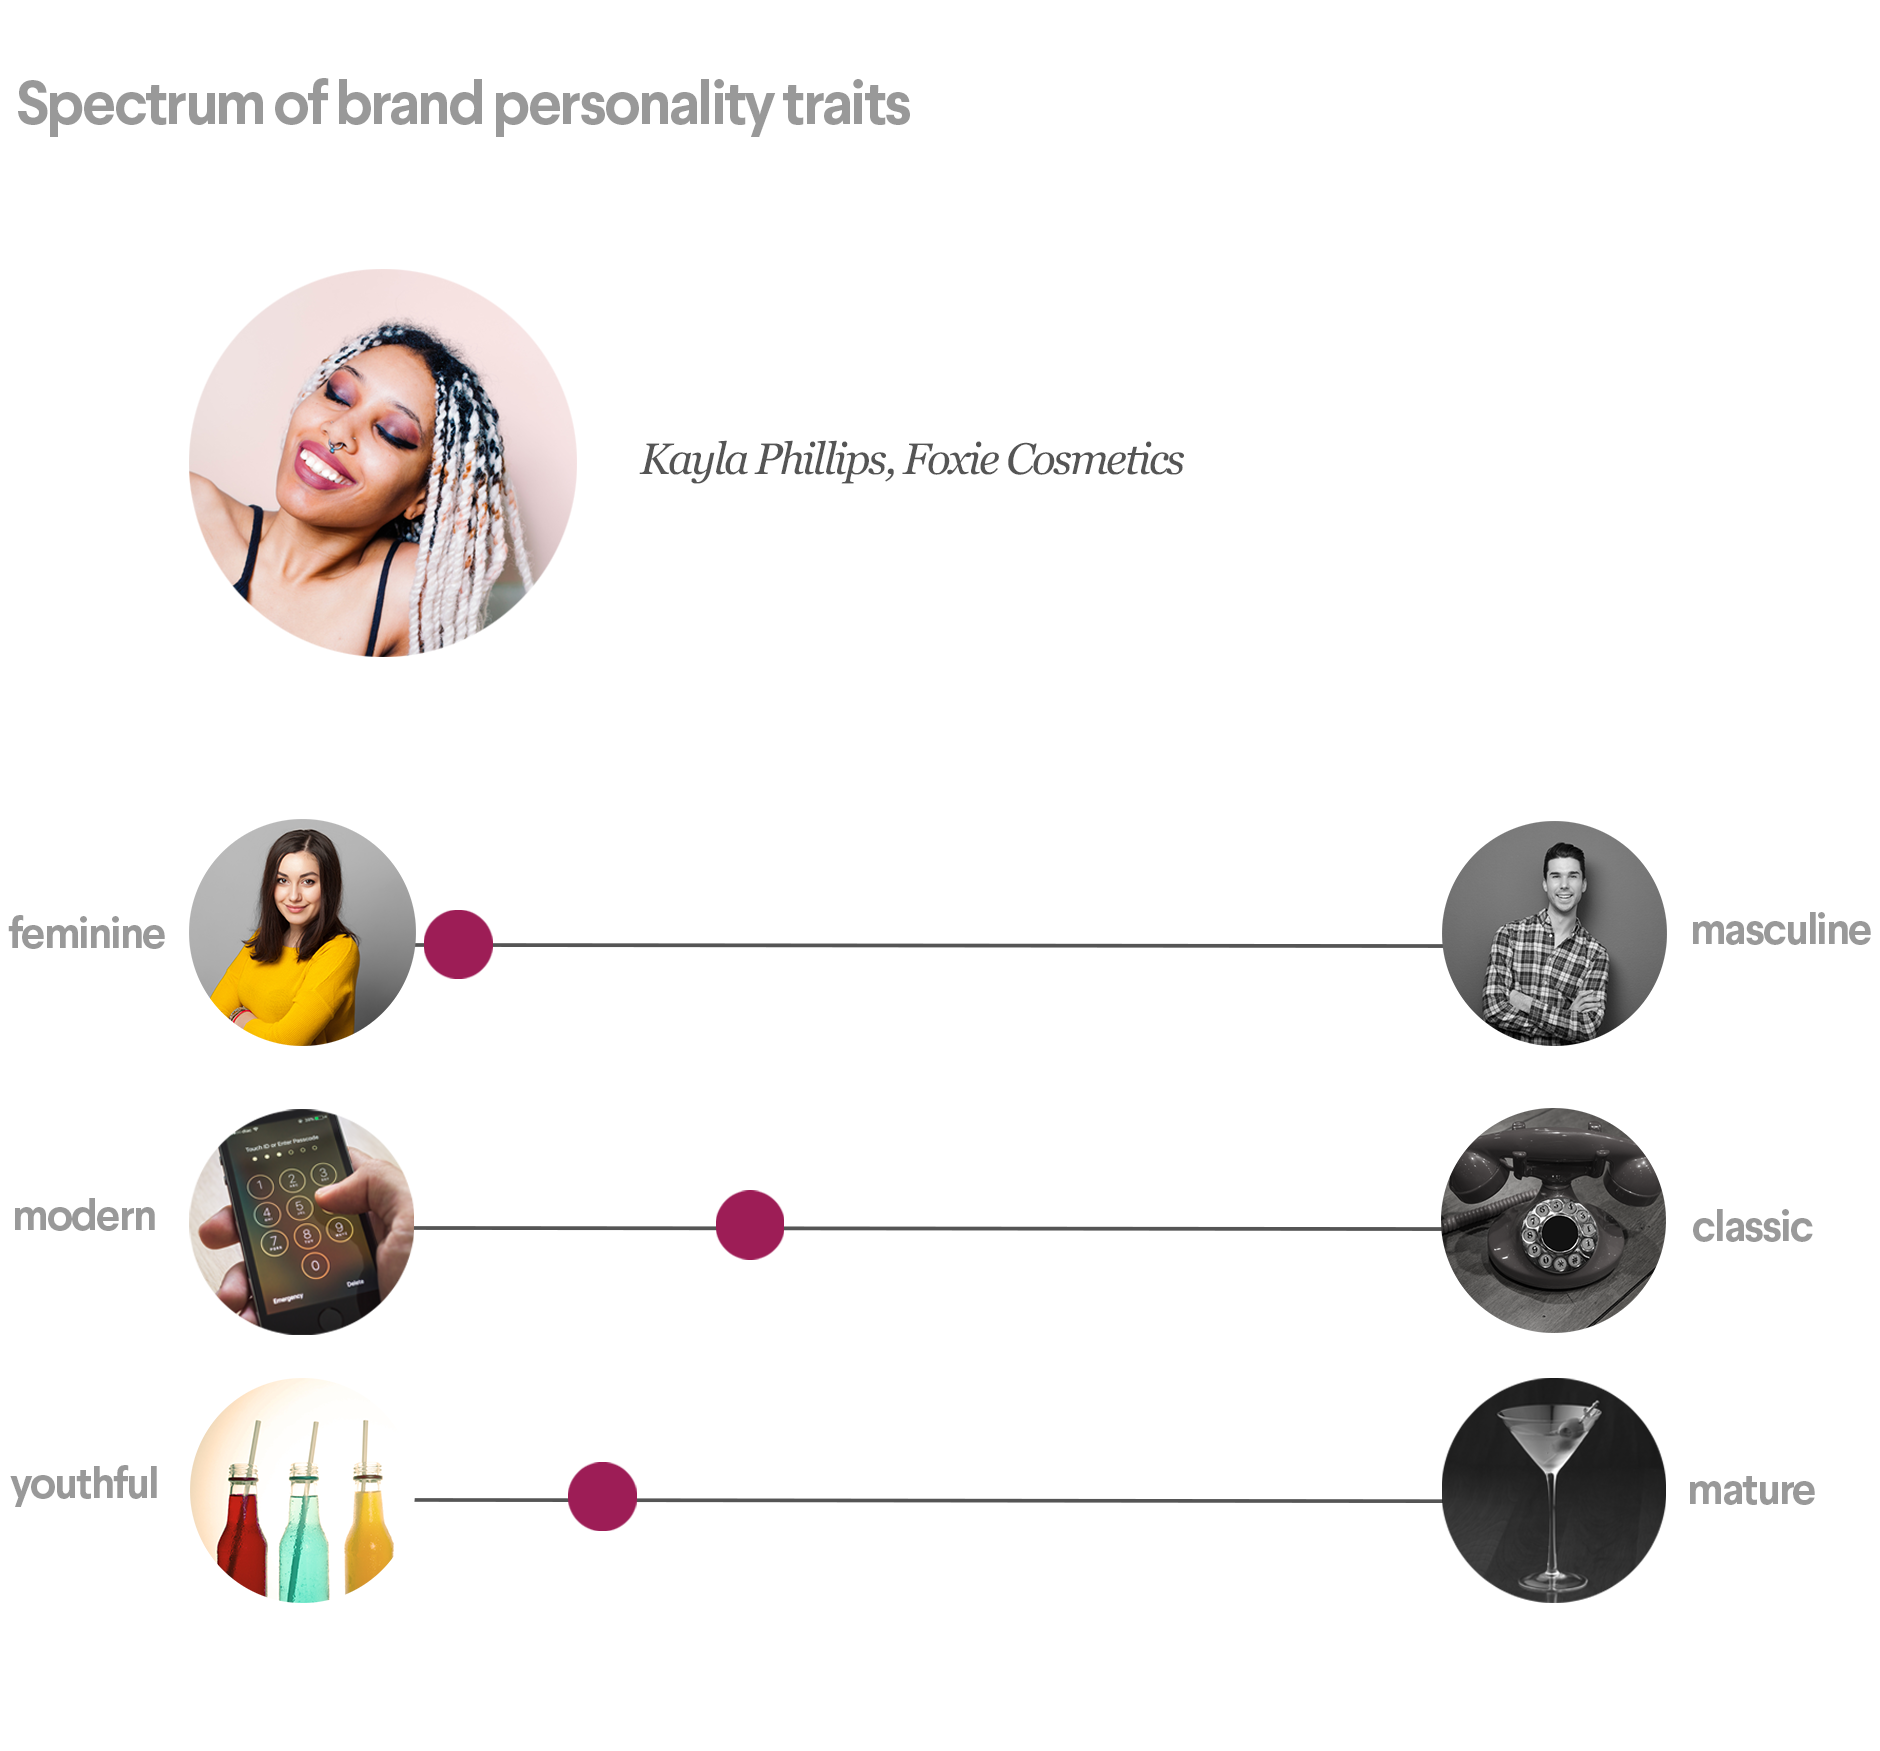 Foxie Cosmetics' brand personality traits